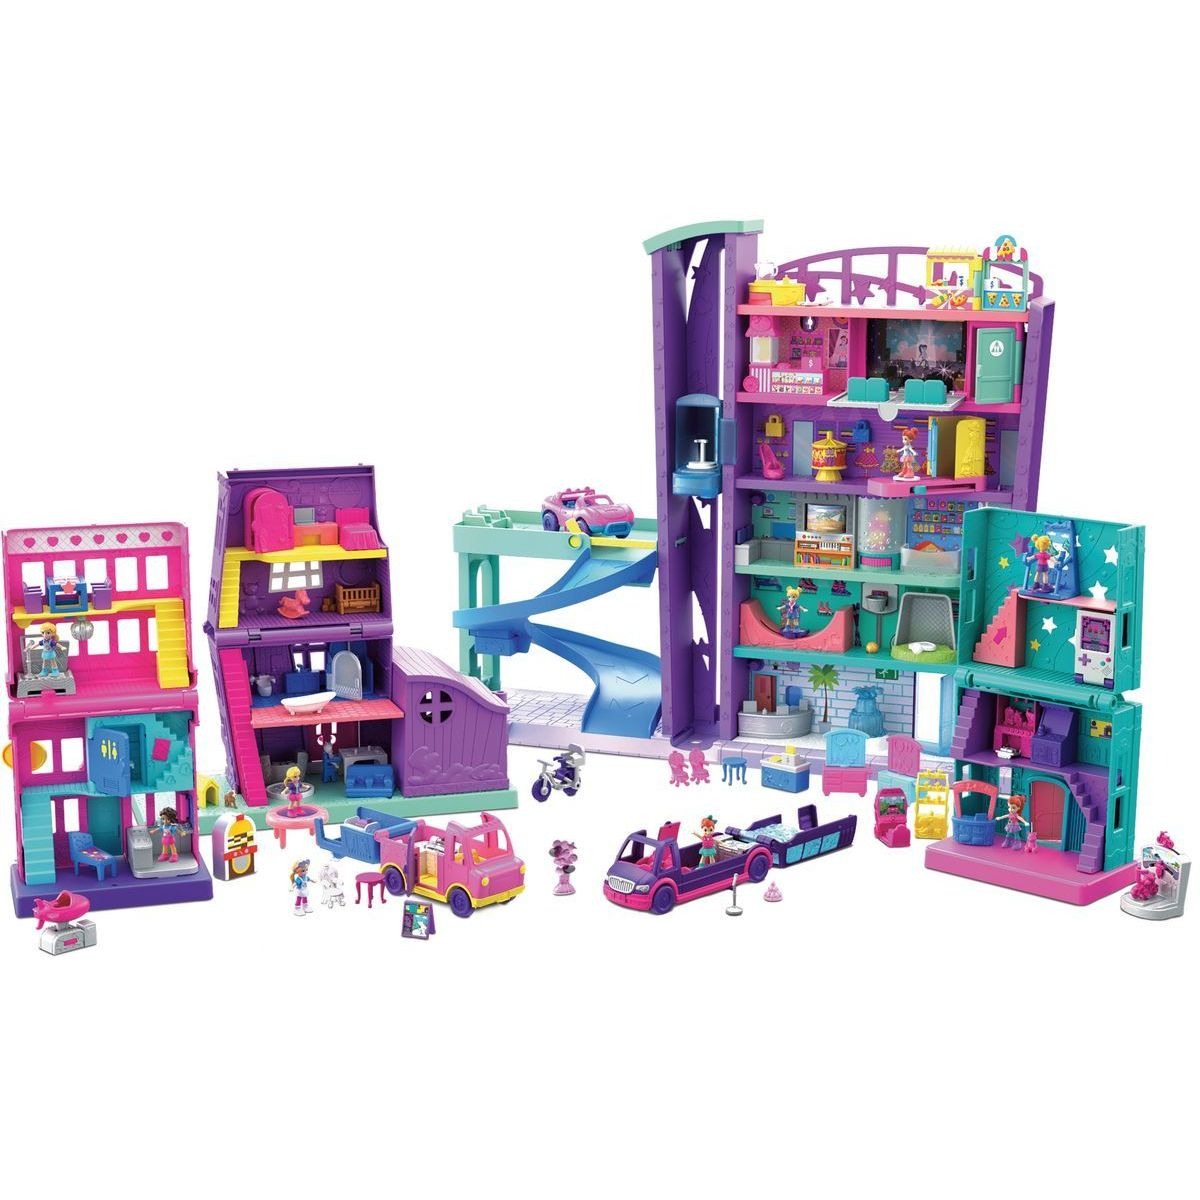 Mattel Polly pocket grande Galleria